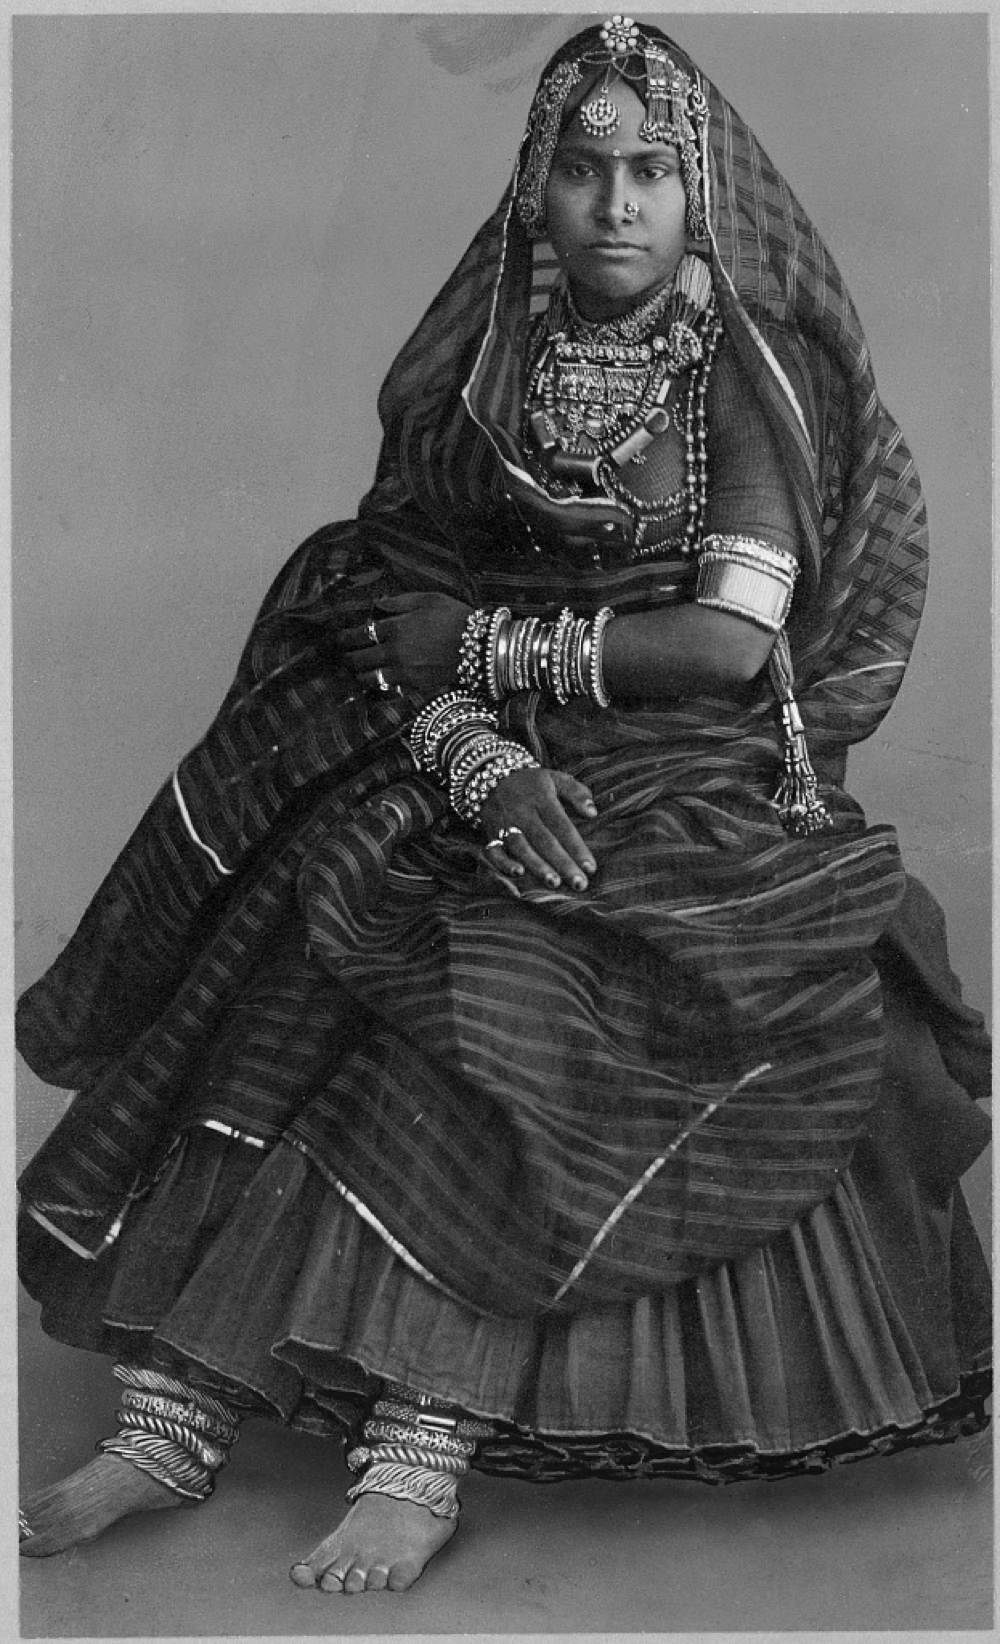 Woman wearing court dress and Indian jewelry